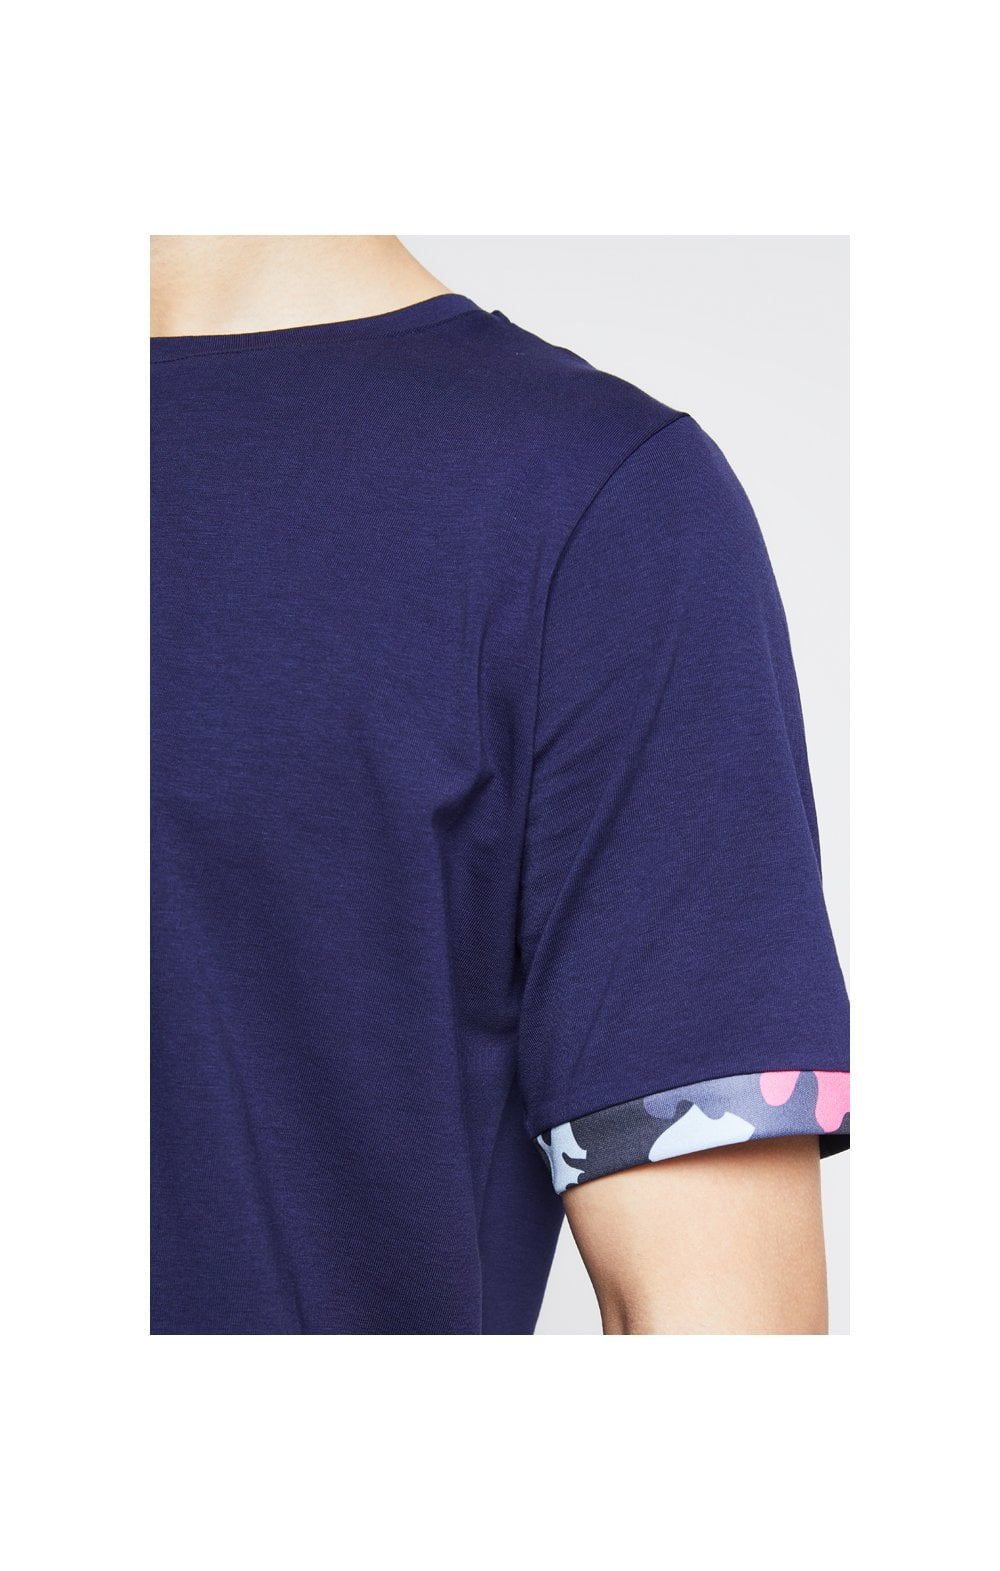 Load image into Gallery viewer, Illusive London Contrast Cuff Tee – Navy & Neon Pink Camo